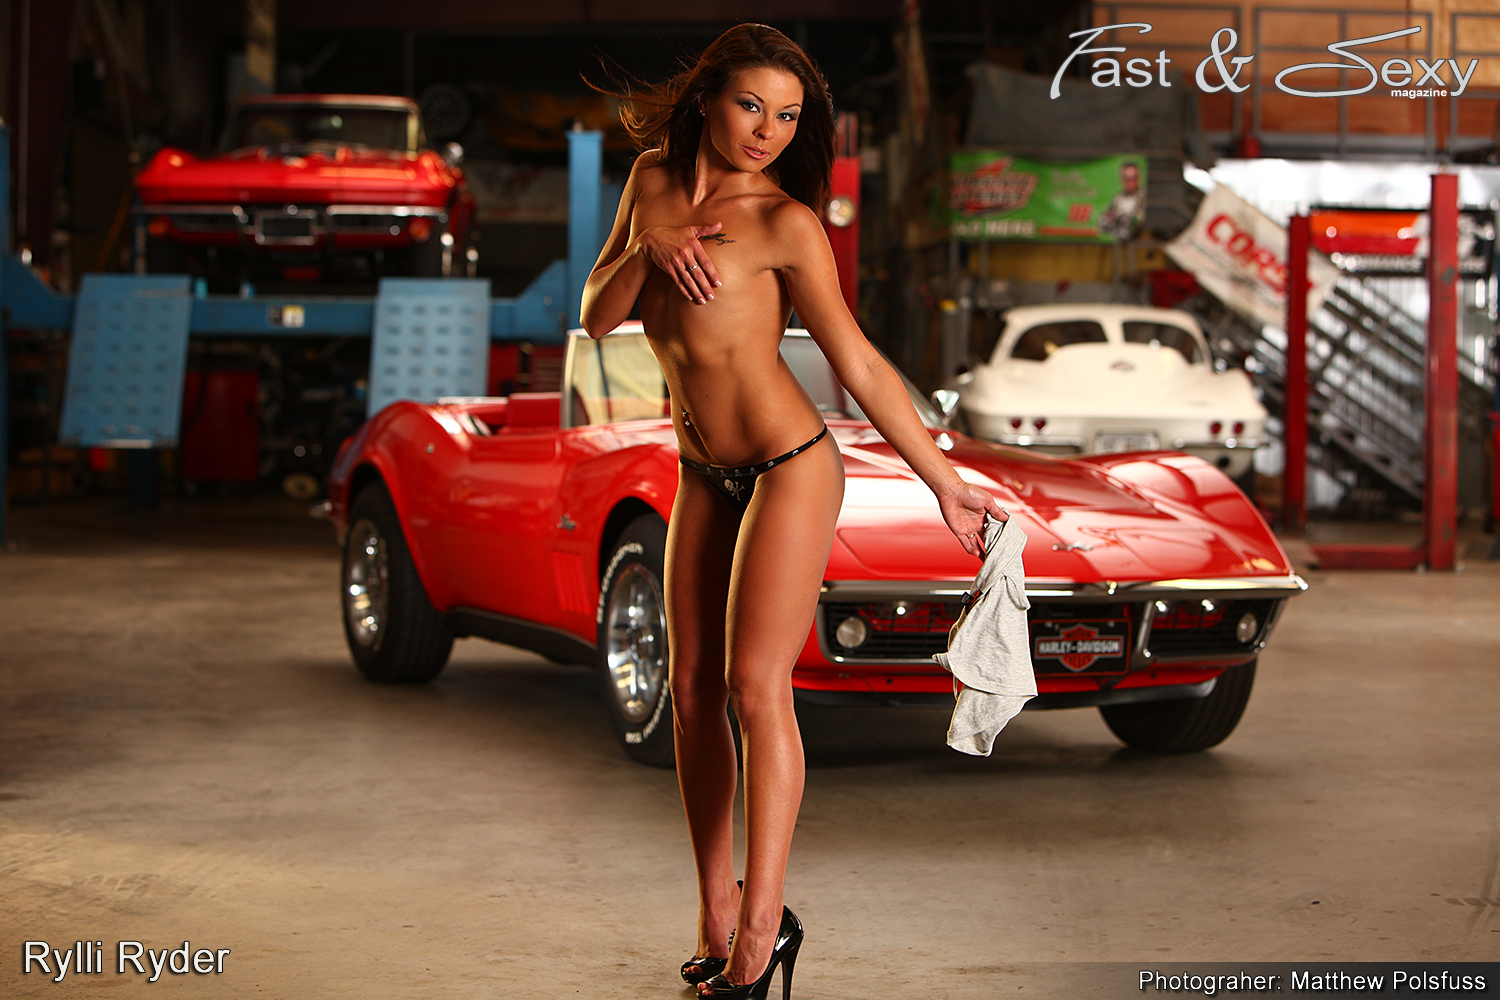 Cars and hot girl